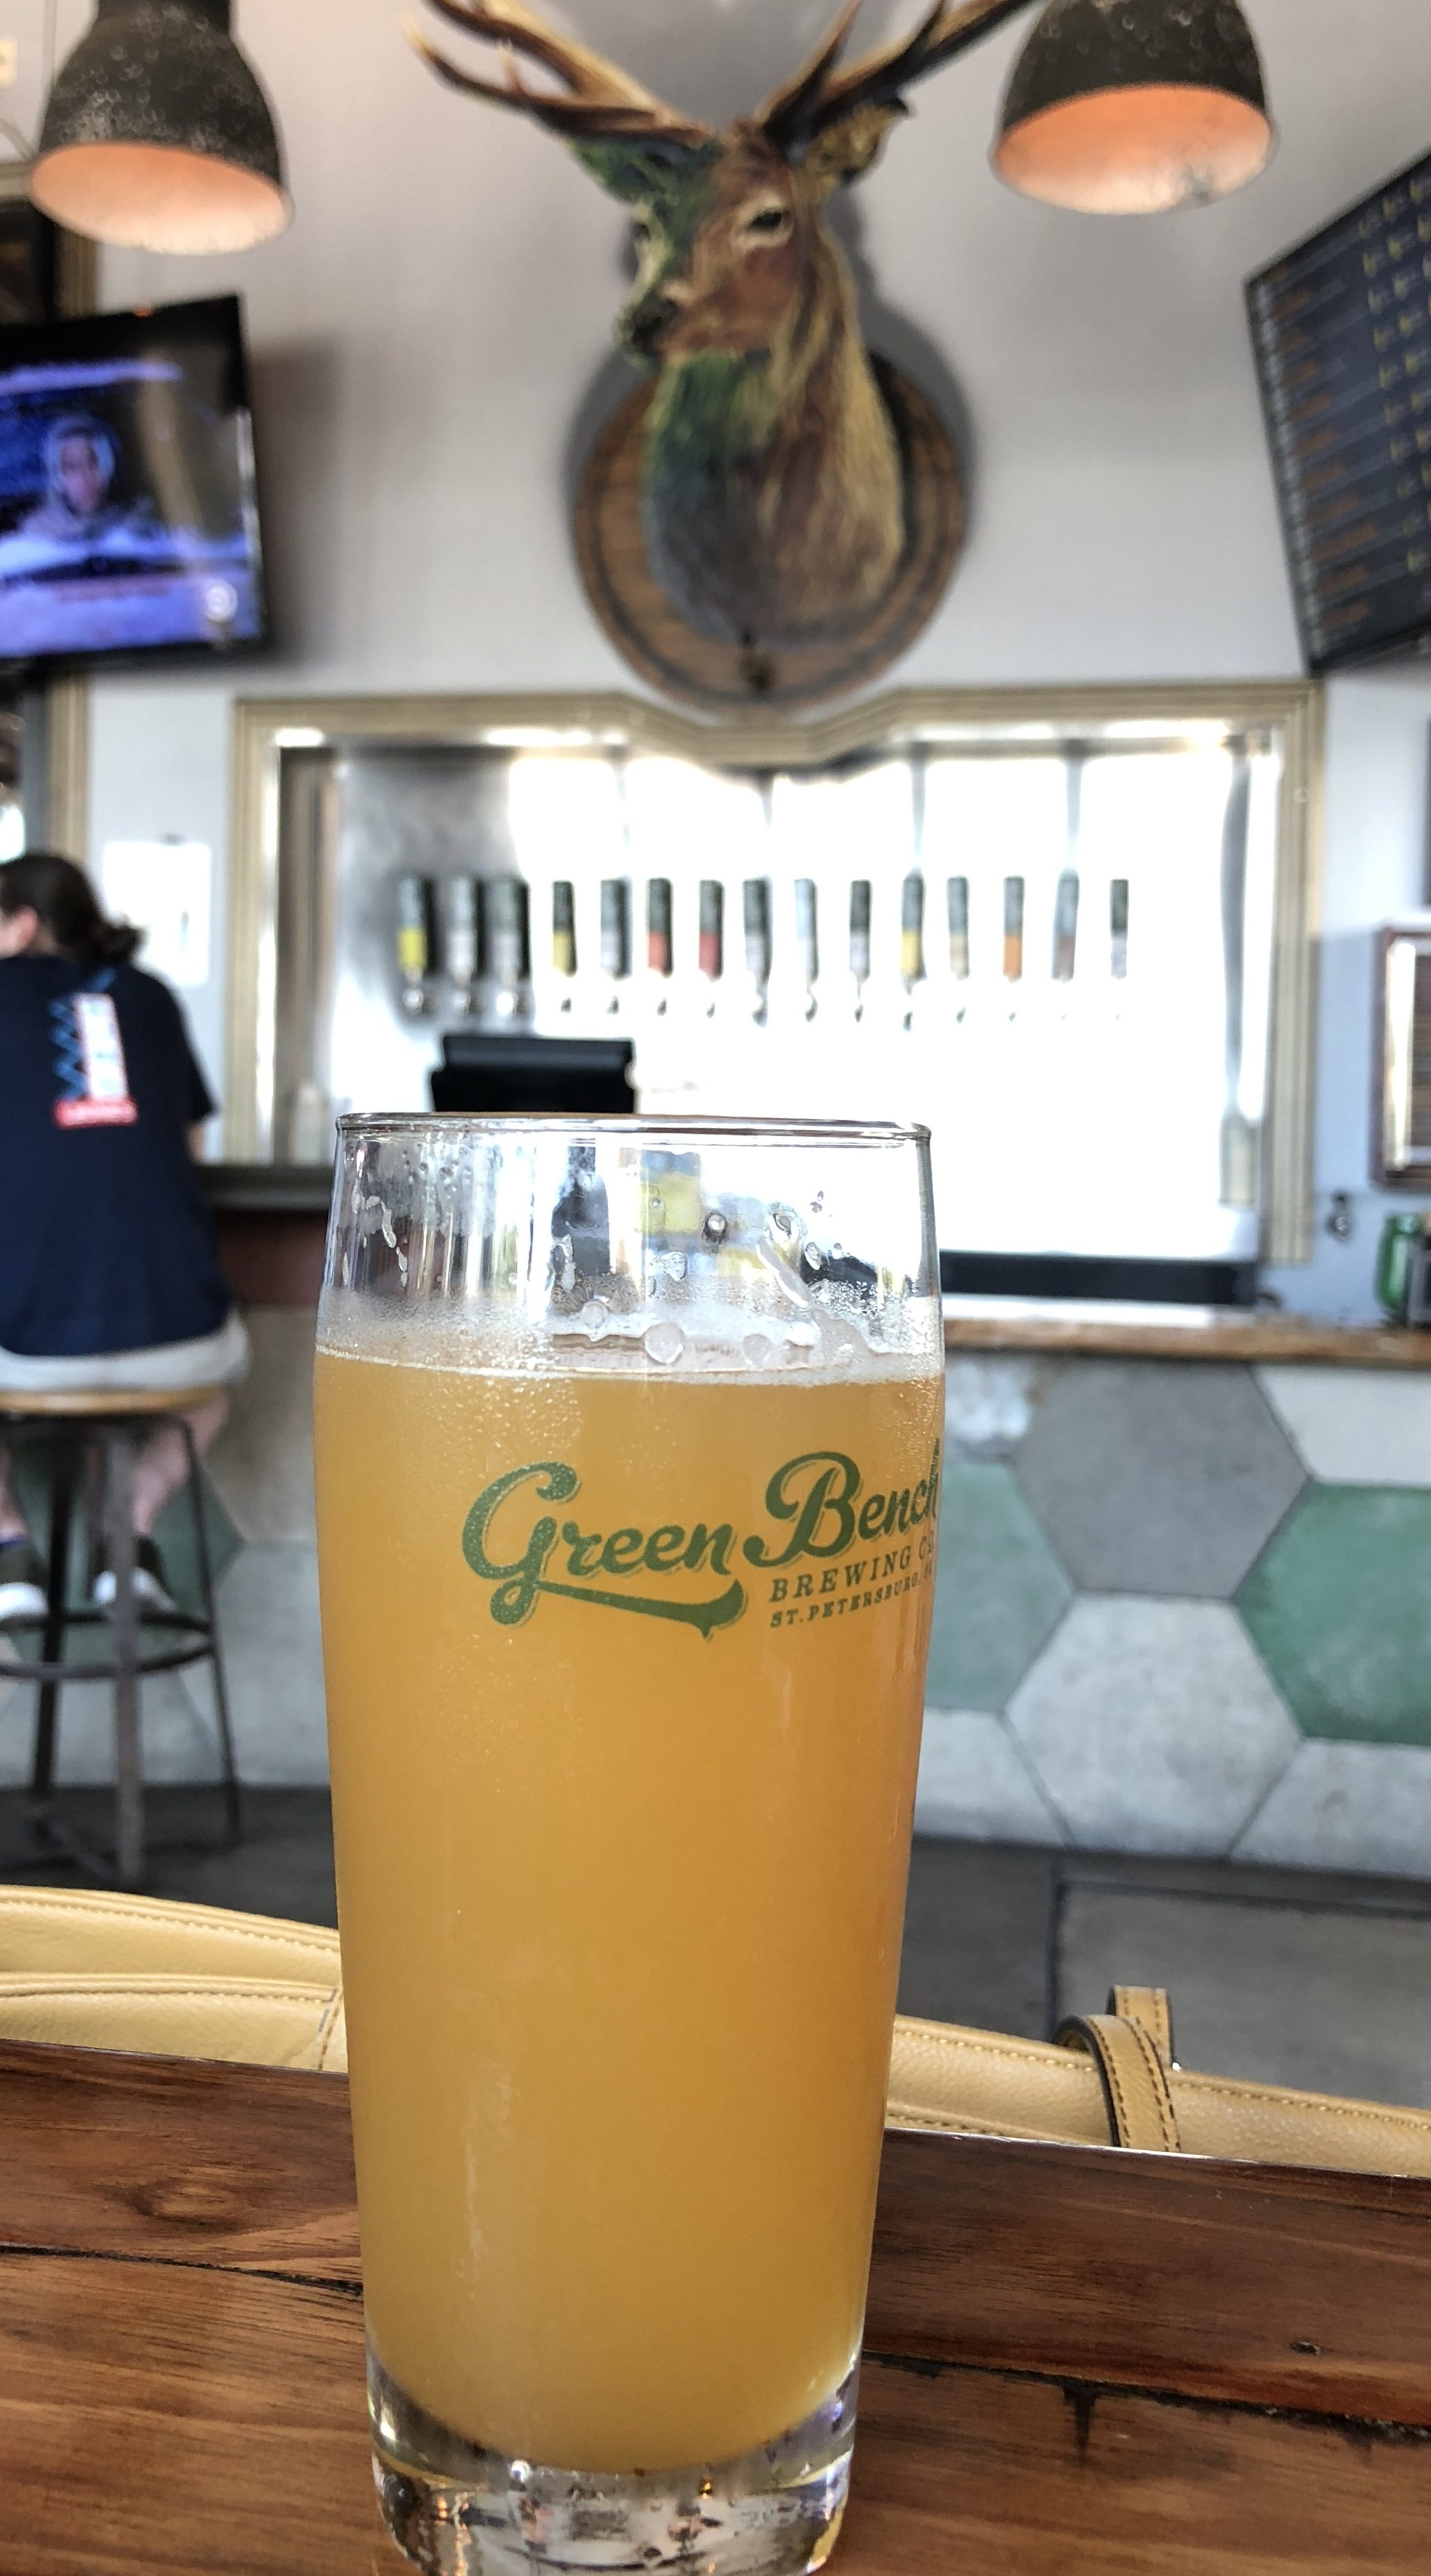 Florida IPA - Pina Colada at Green Bench Brewing